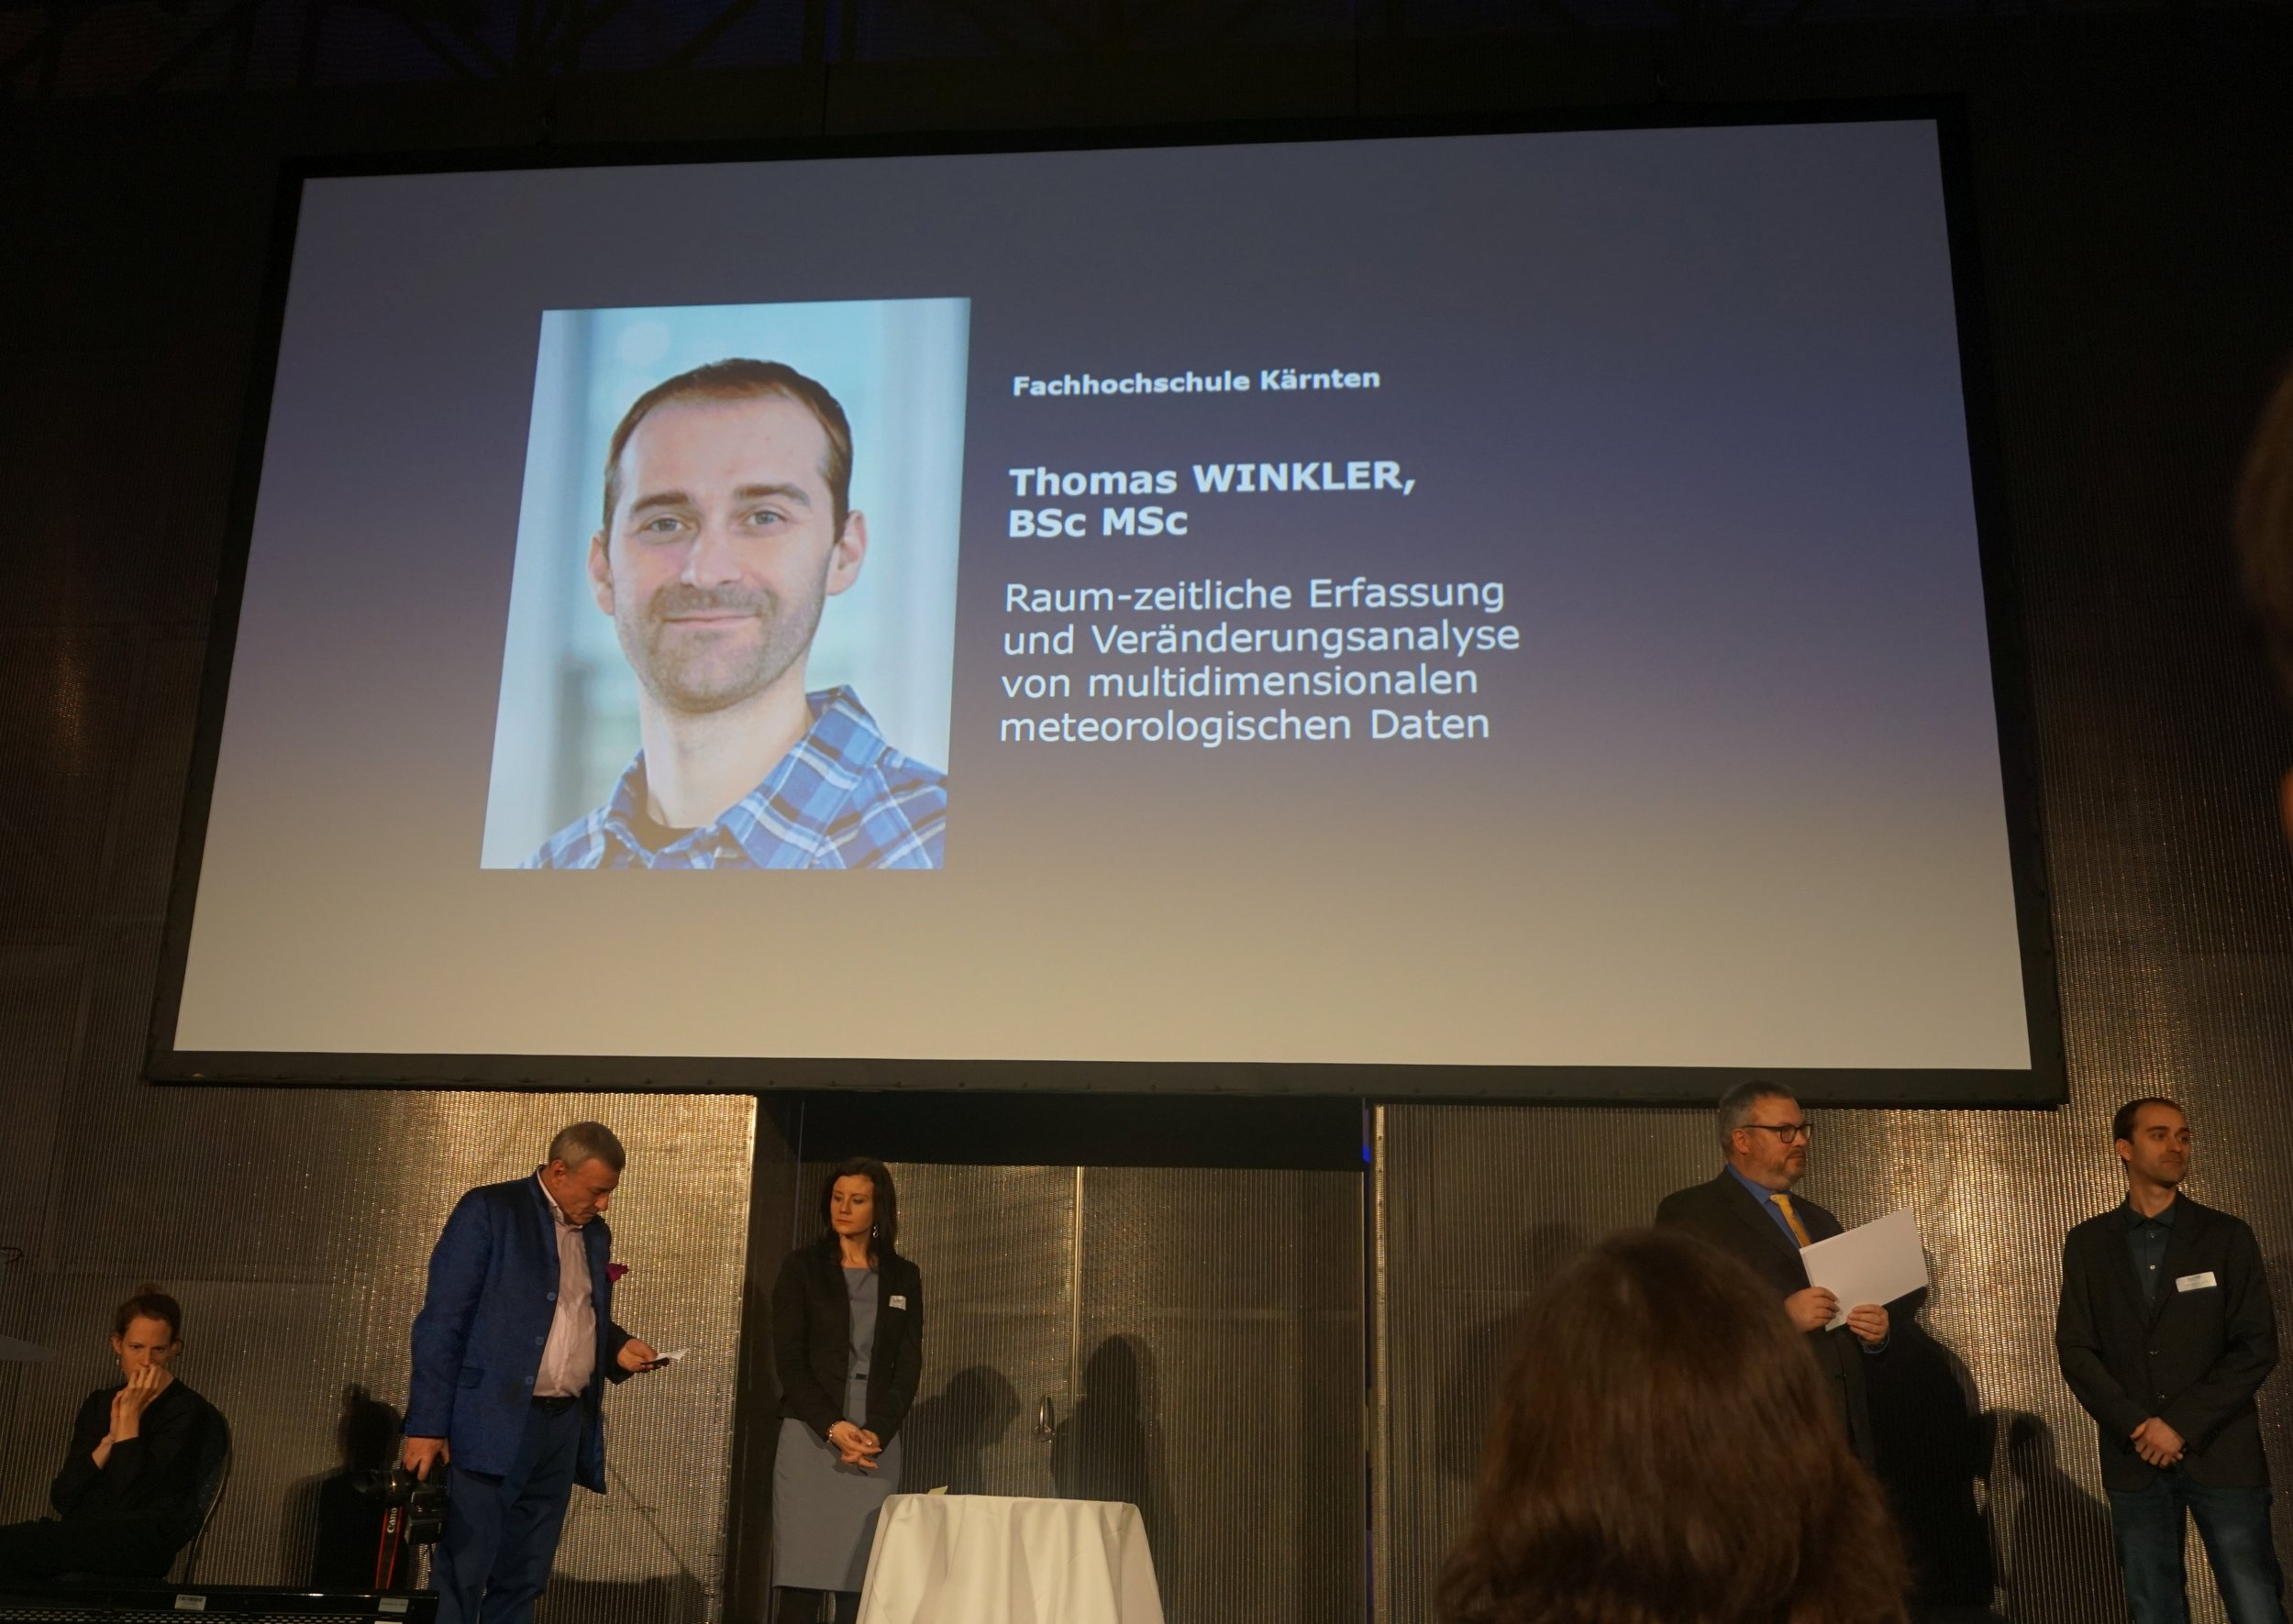 Thomas Winkler accepting the Honorary Prize